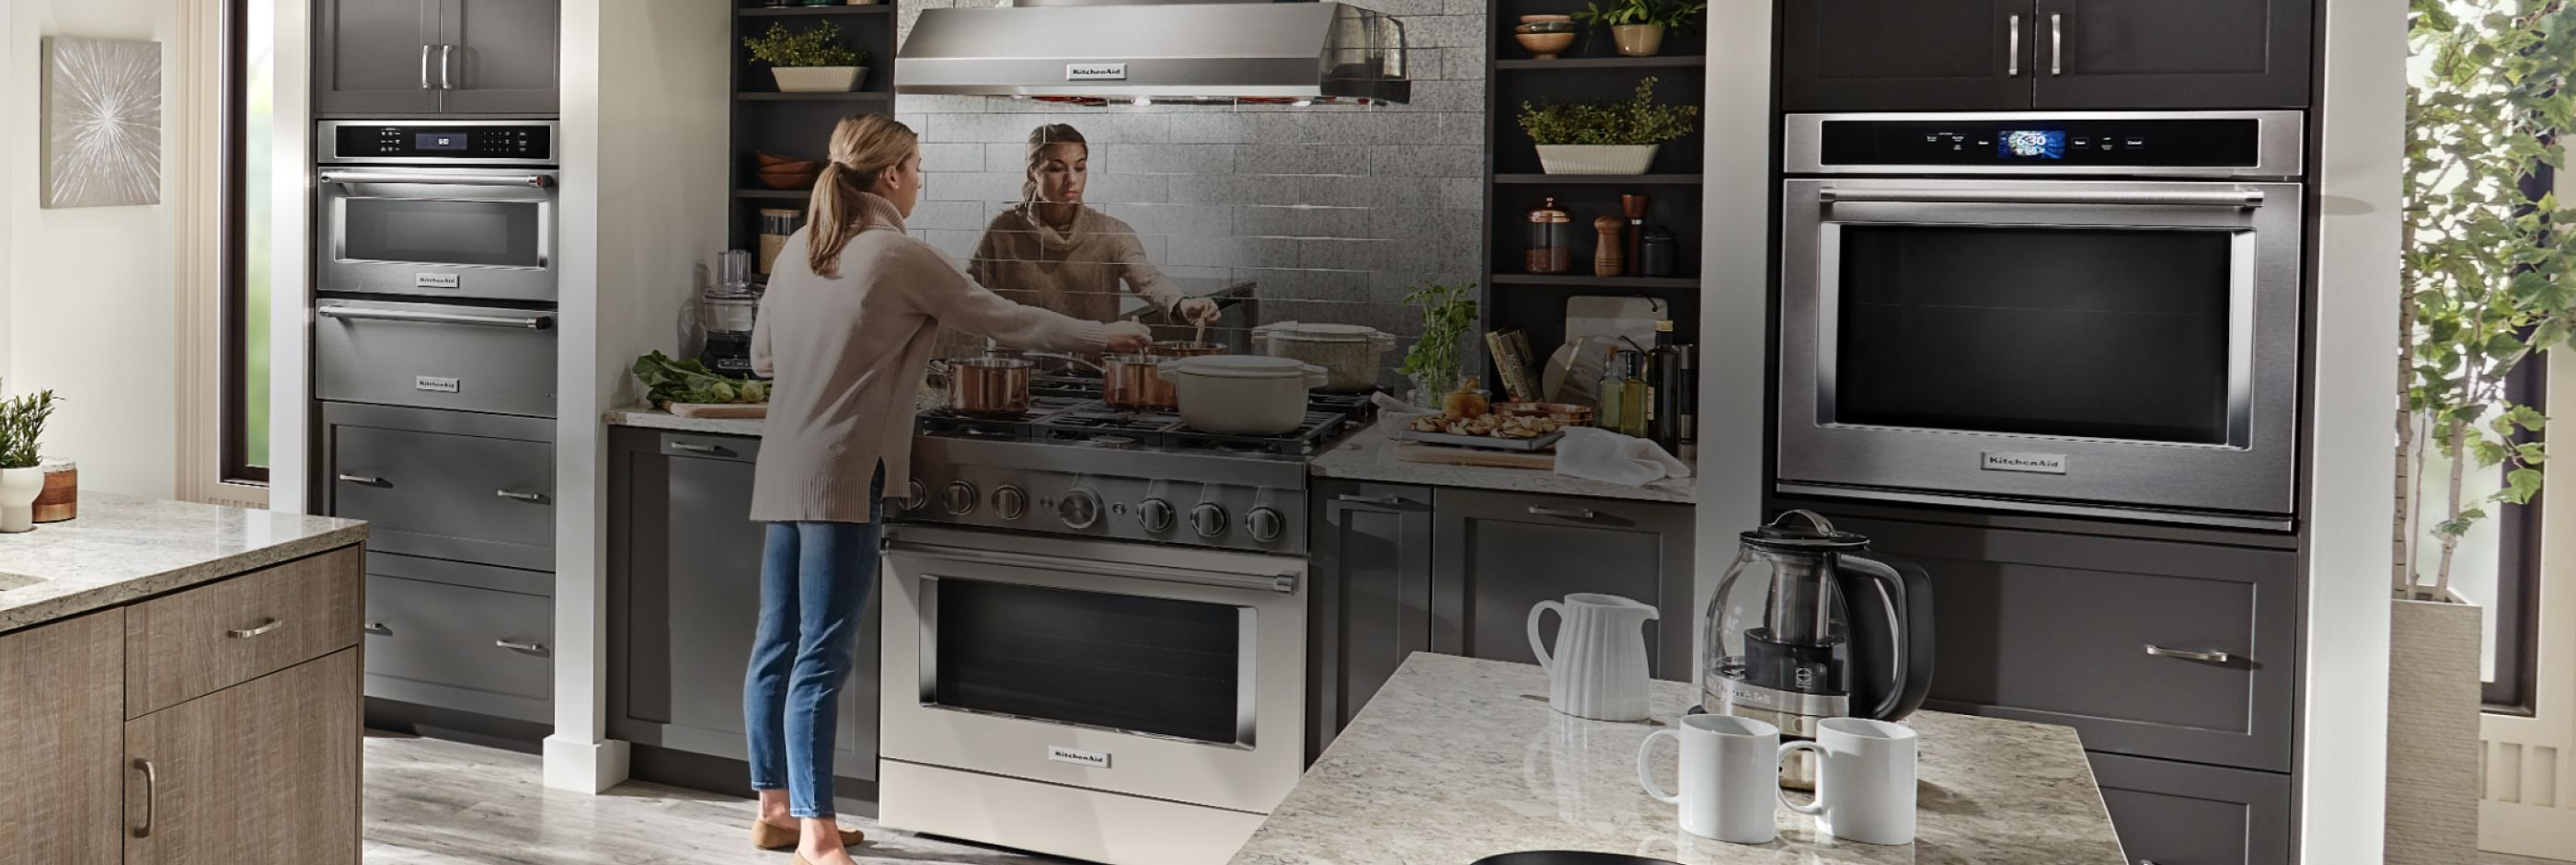 Cooking in a fully equipped KitchenAid® kitchen.